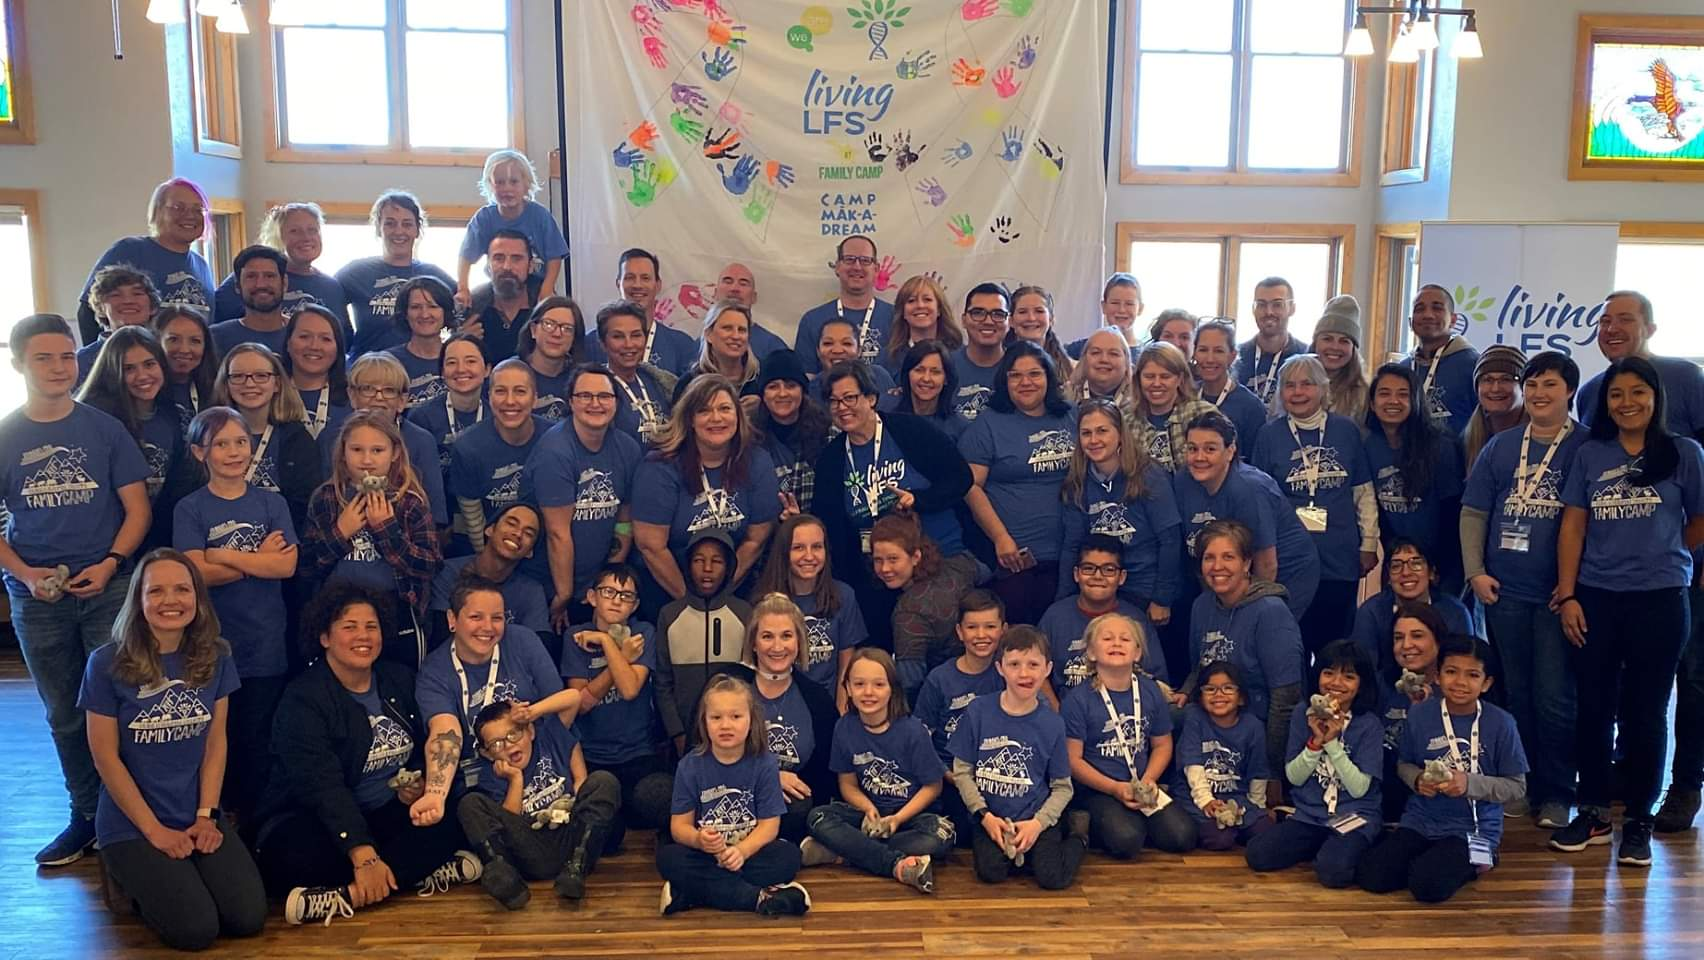 Living LFS 2019 Family Camp Group Photo